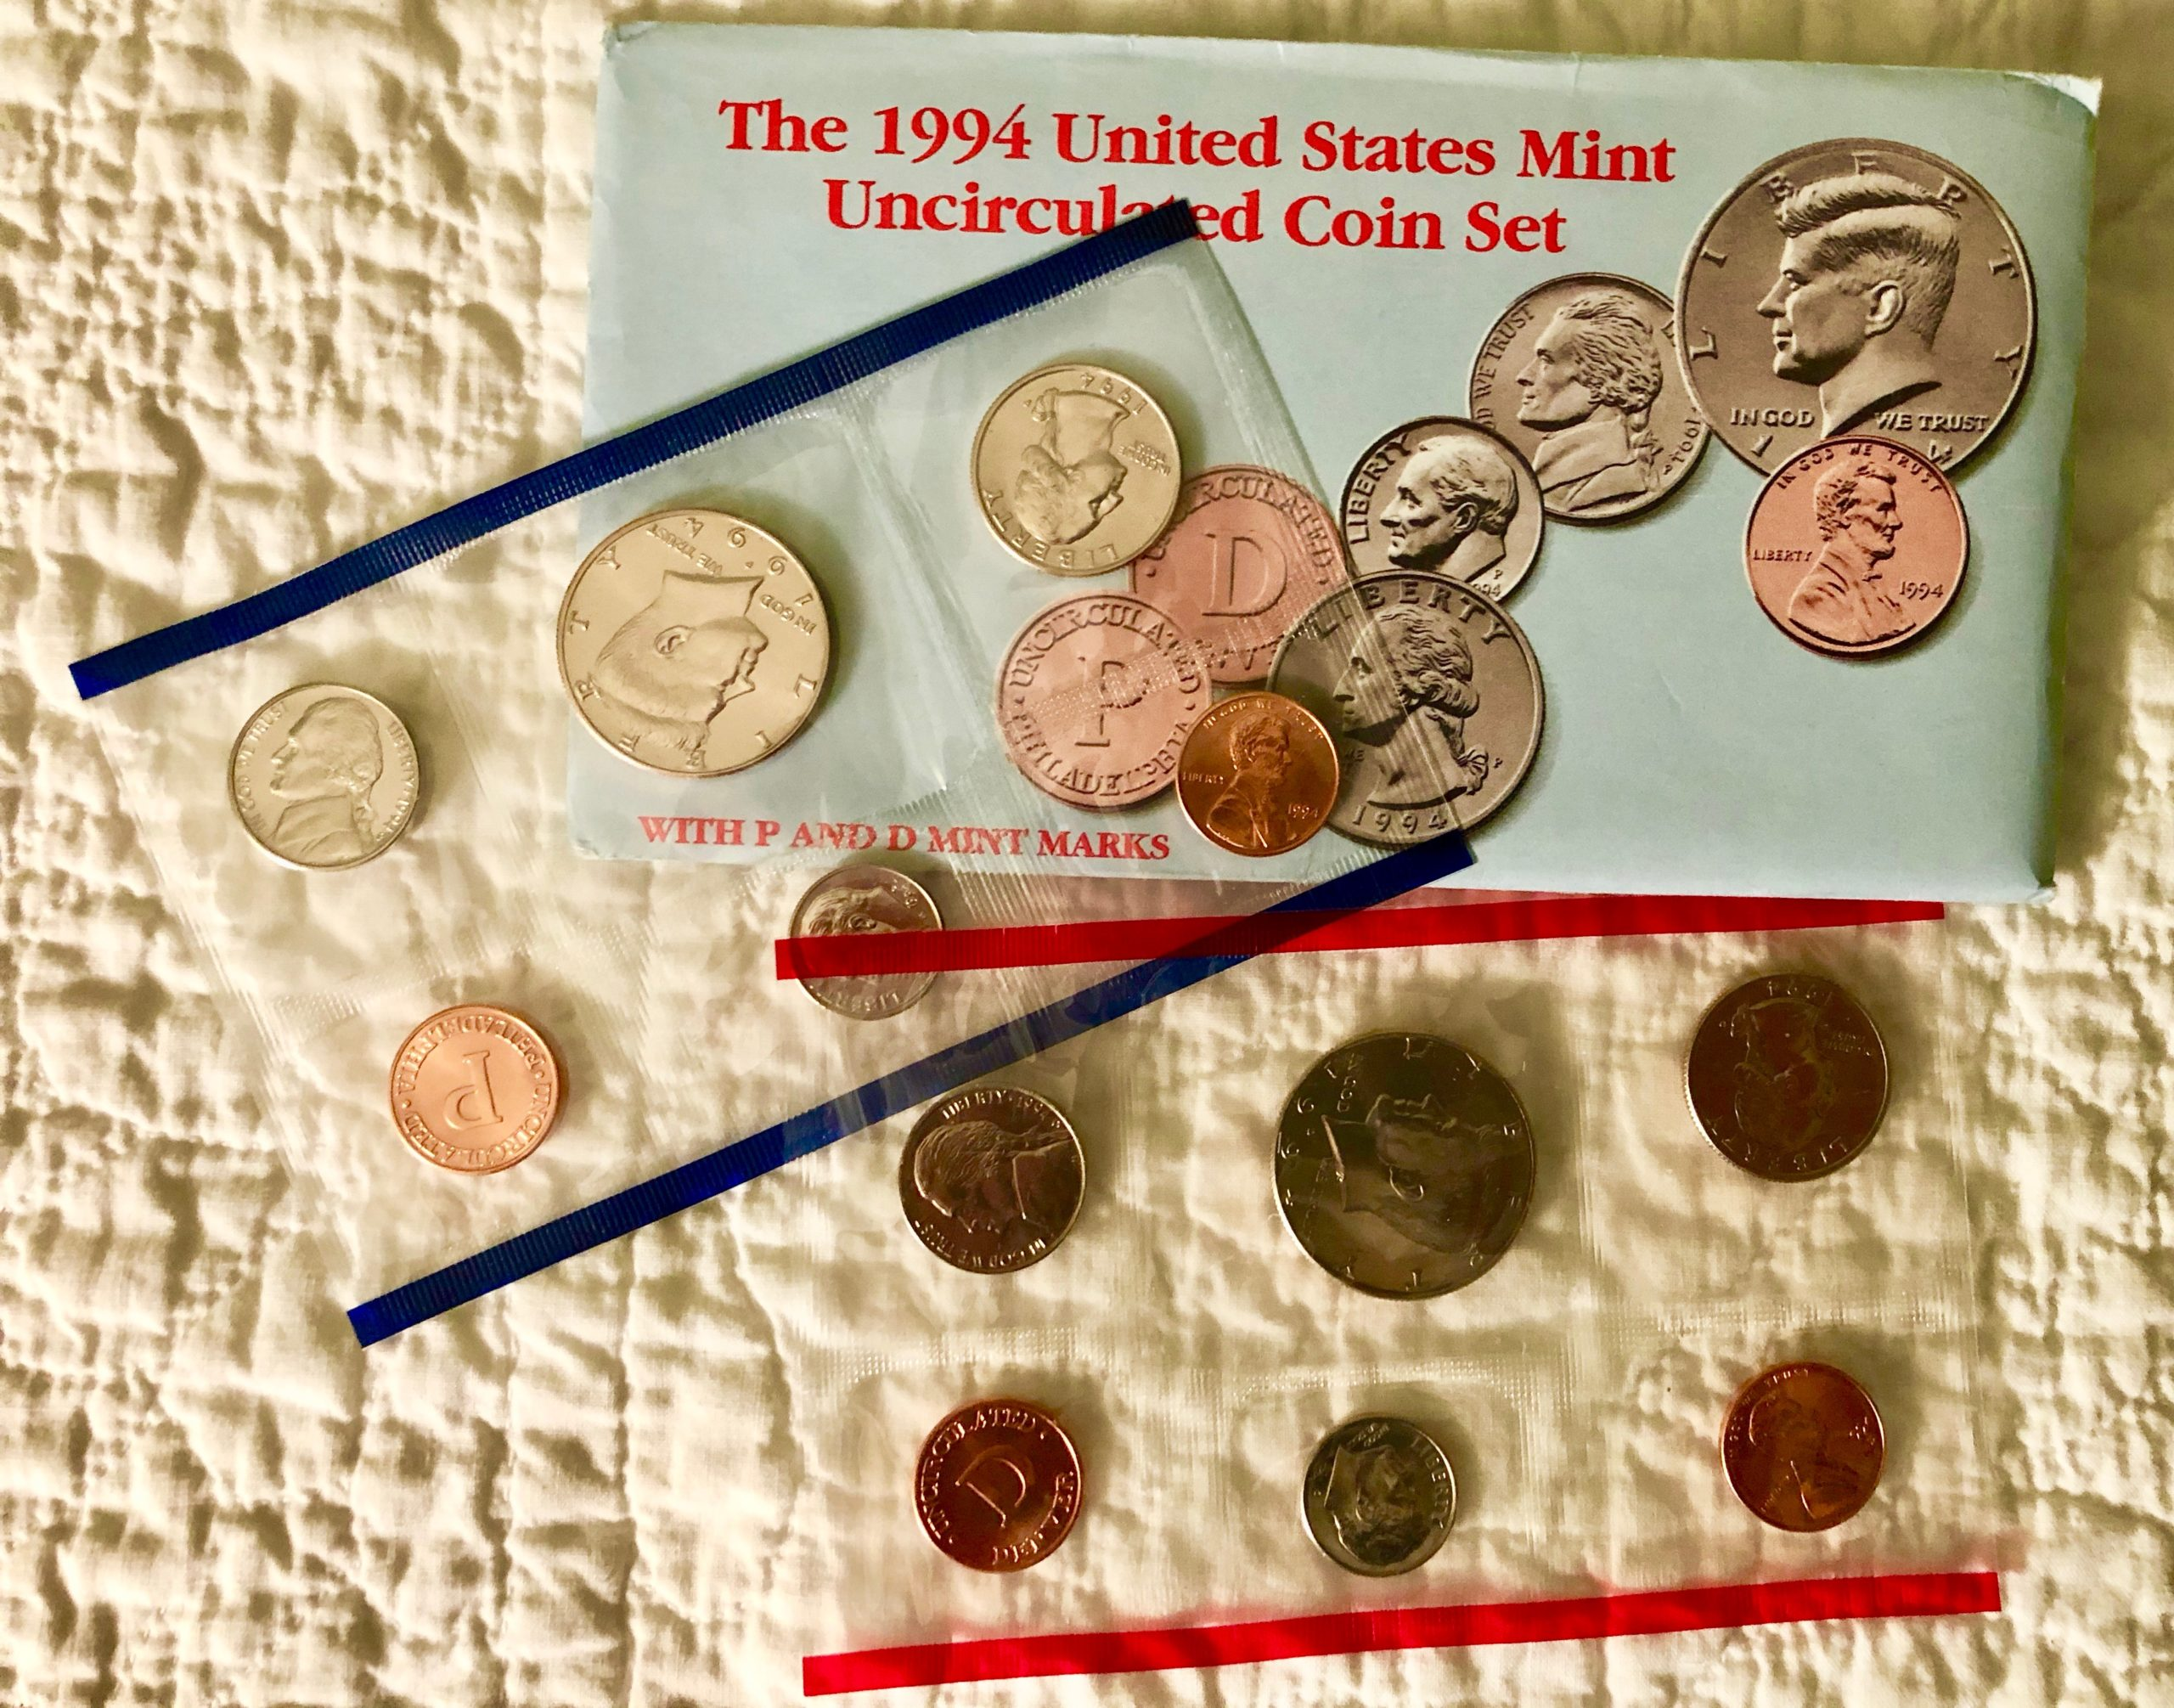 Item HG 13 - 1994 US Mint Uncirculated Coin Set of 10 Coins - Wow